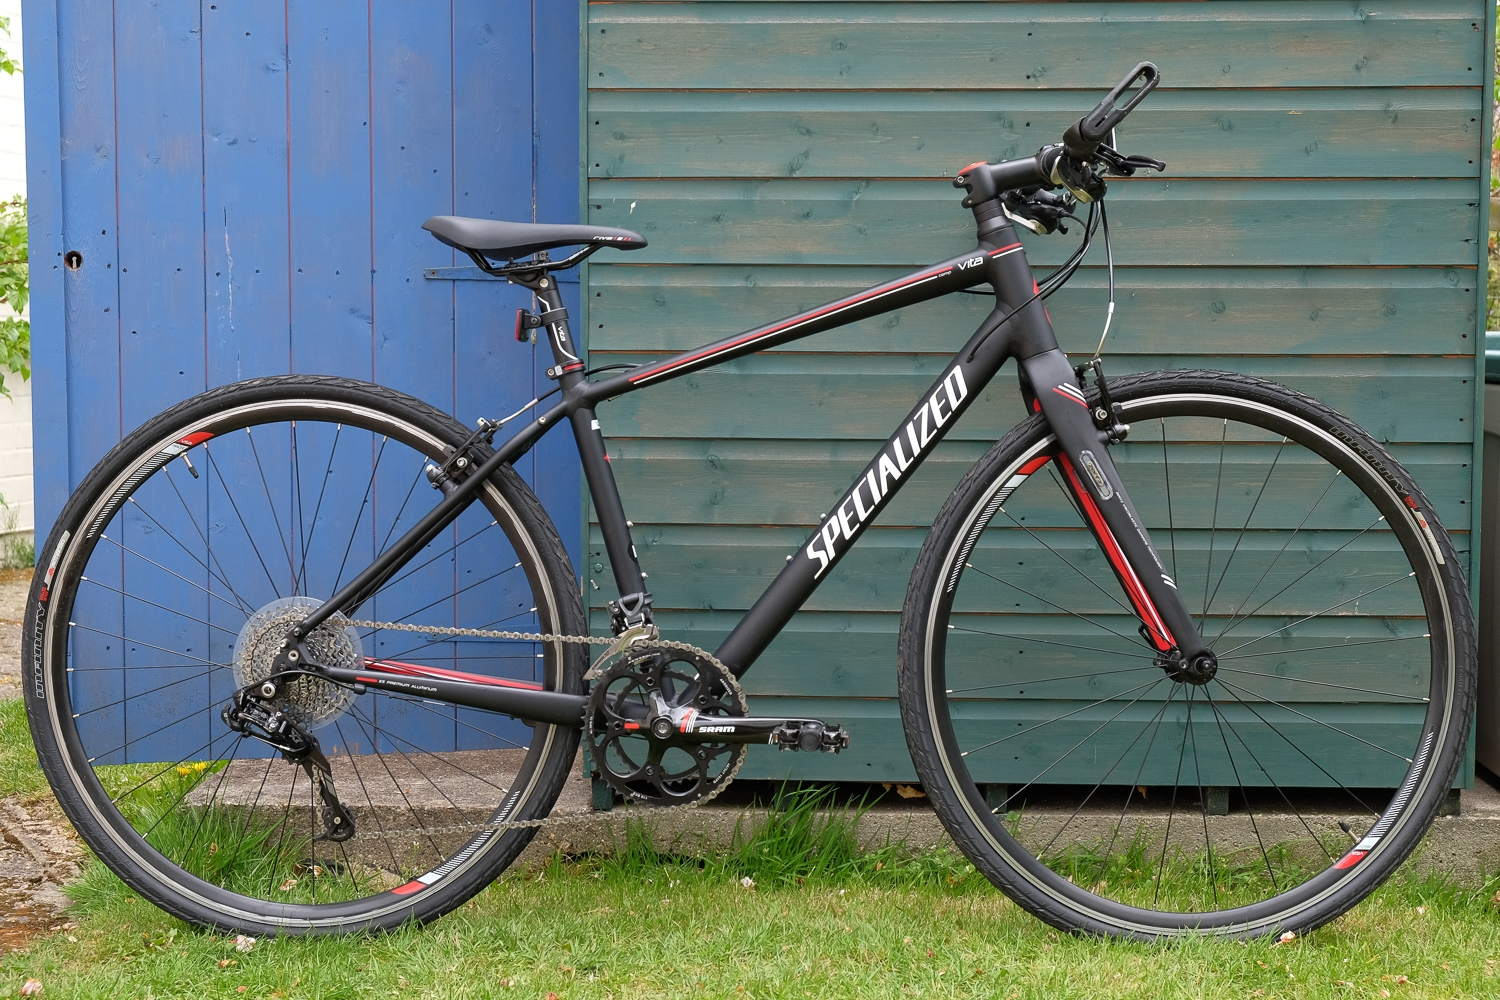 Lot 75 - Specialized Vita Comp 2013. Women's flat bar road bike. Weighs approx 10kg. Medium frame. - Sold for £190